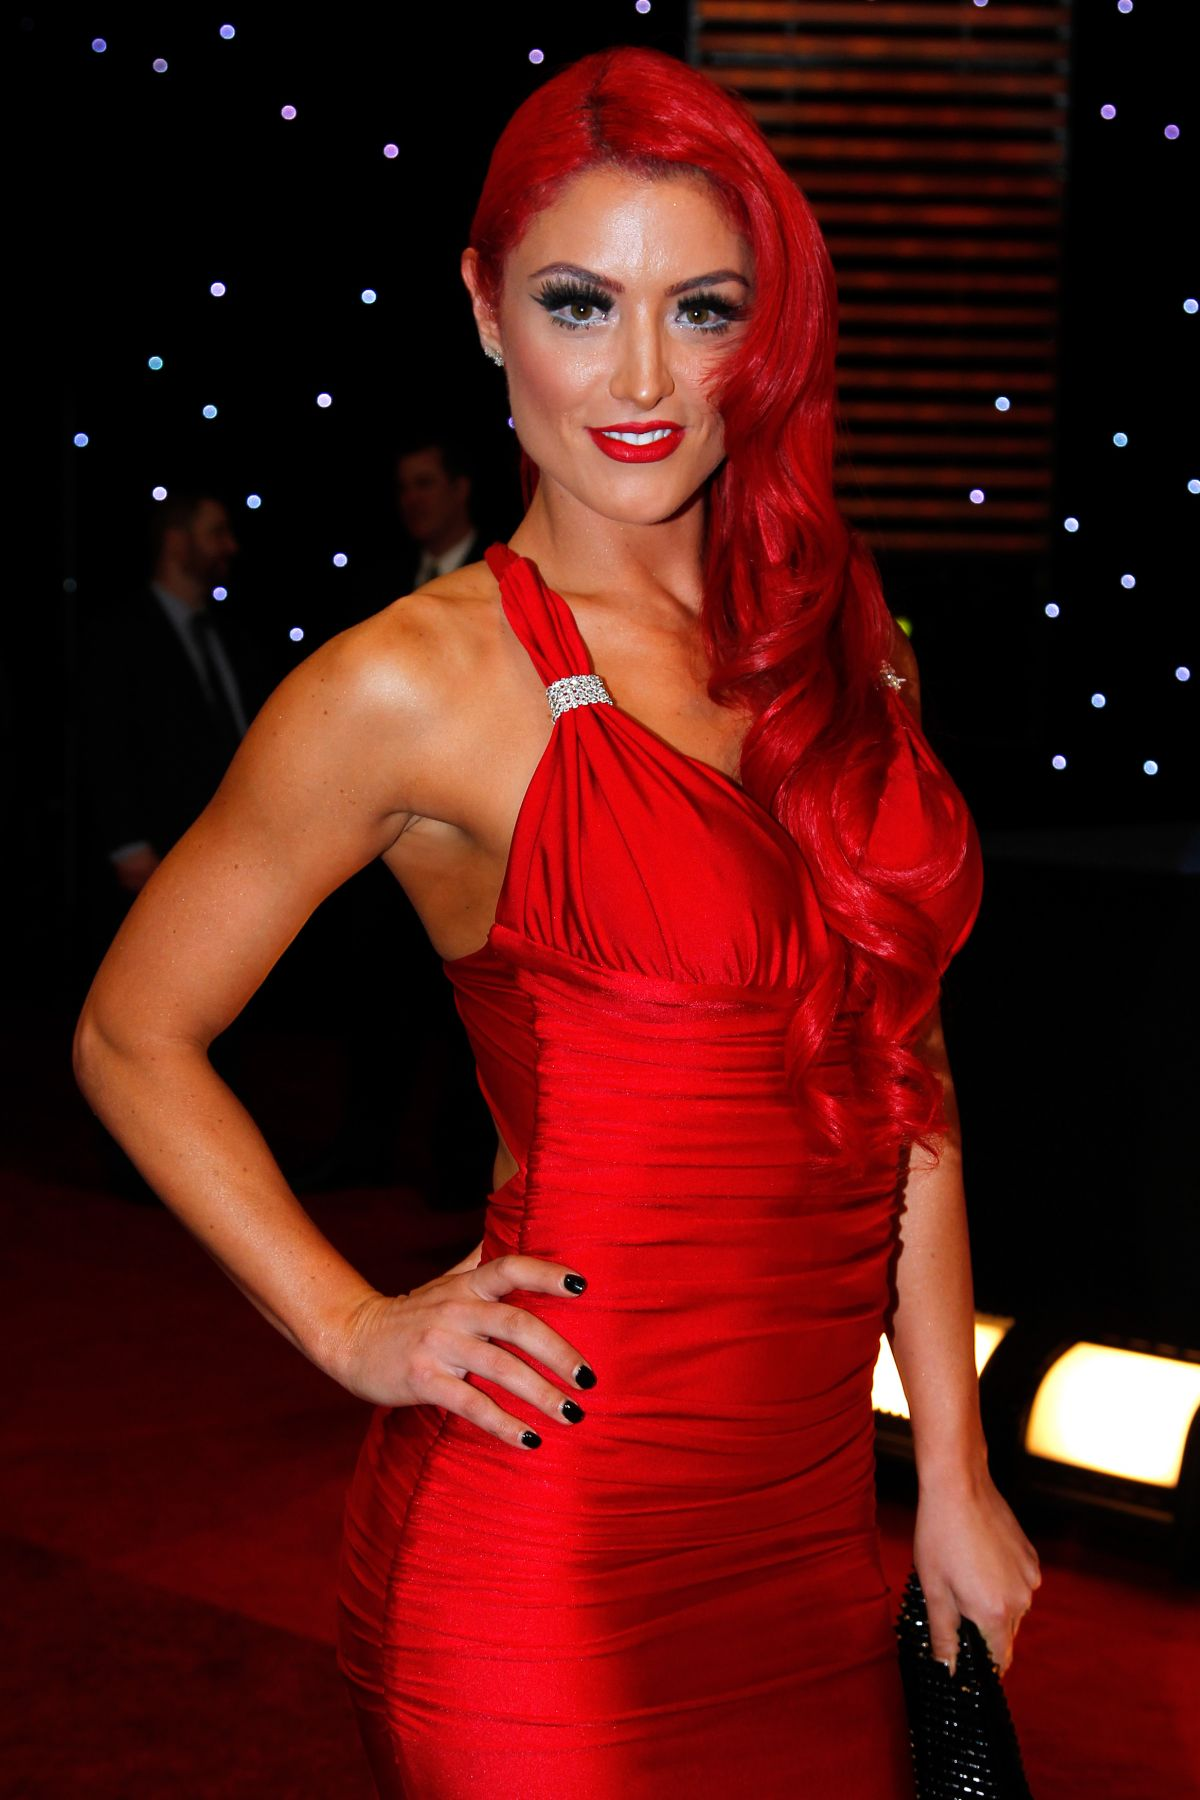 Eva Marie/Natalie Nelson At WWE Hall of Fame Induction Ceremony